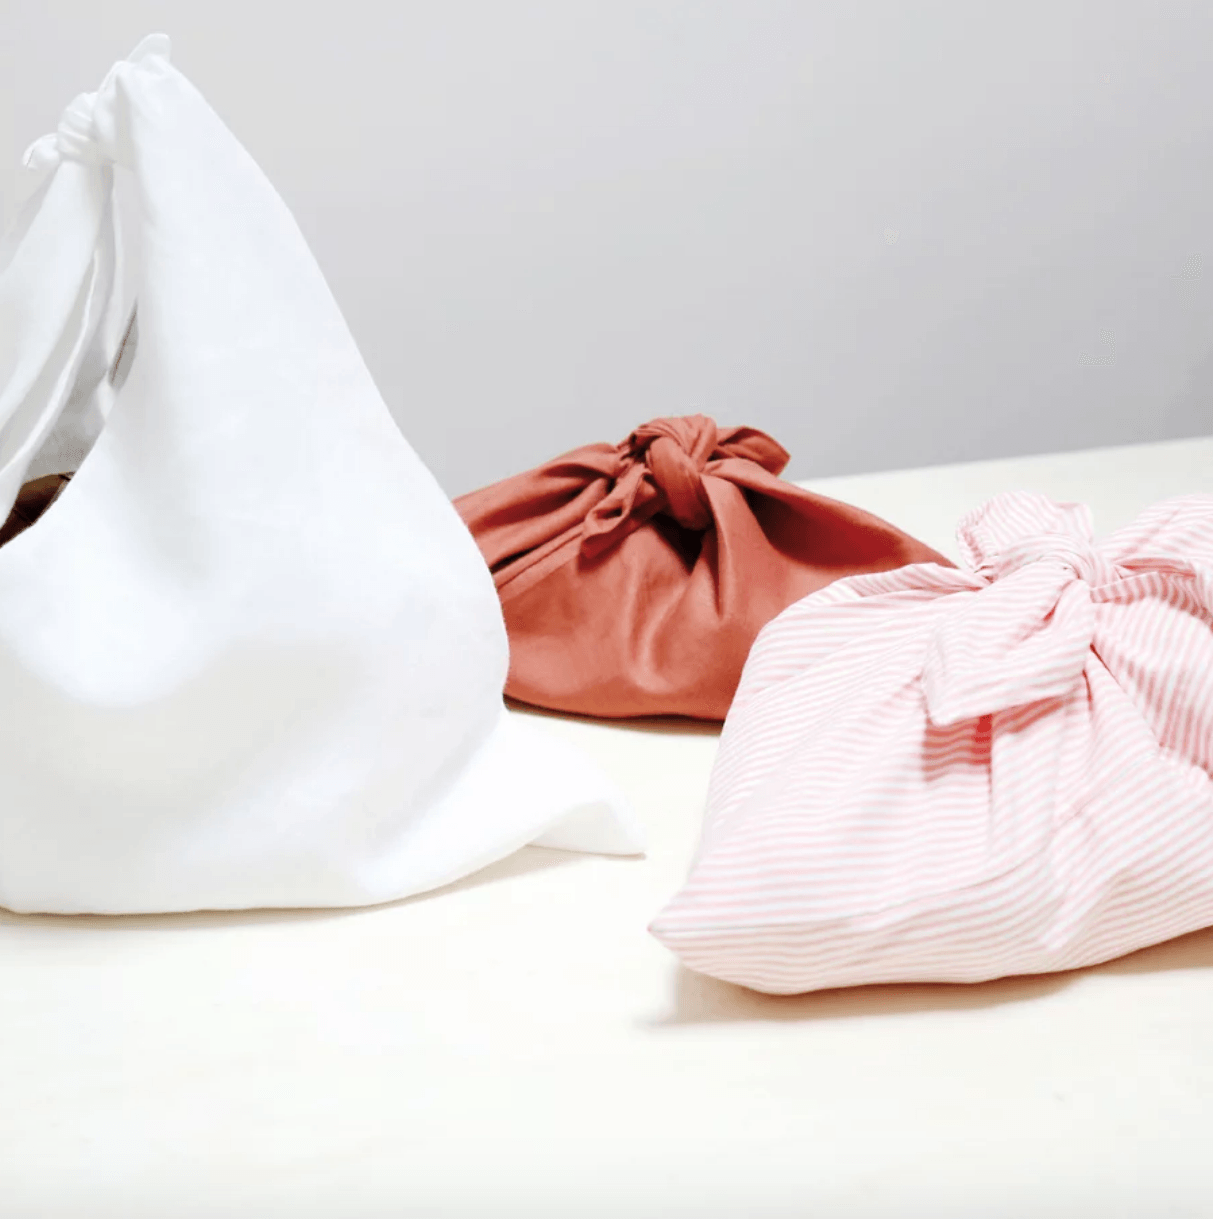 ClothKnot Bags (orbaluchons)are made in France by a textile artist and are an all-purpose alternative to plastic, for carrying and preserving bread, fruits, vegetables, herbs, and more. (&#8